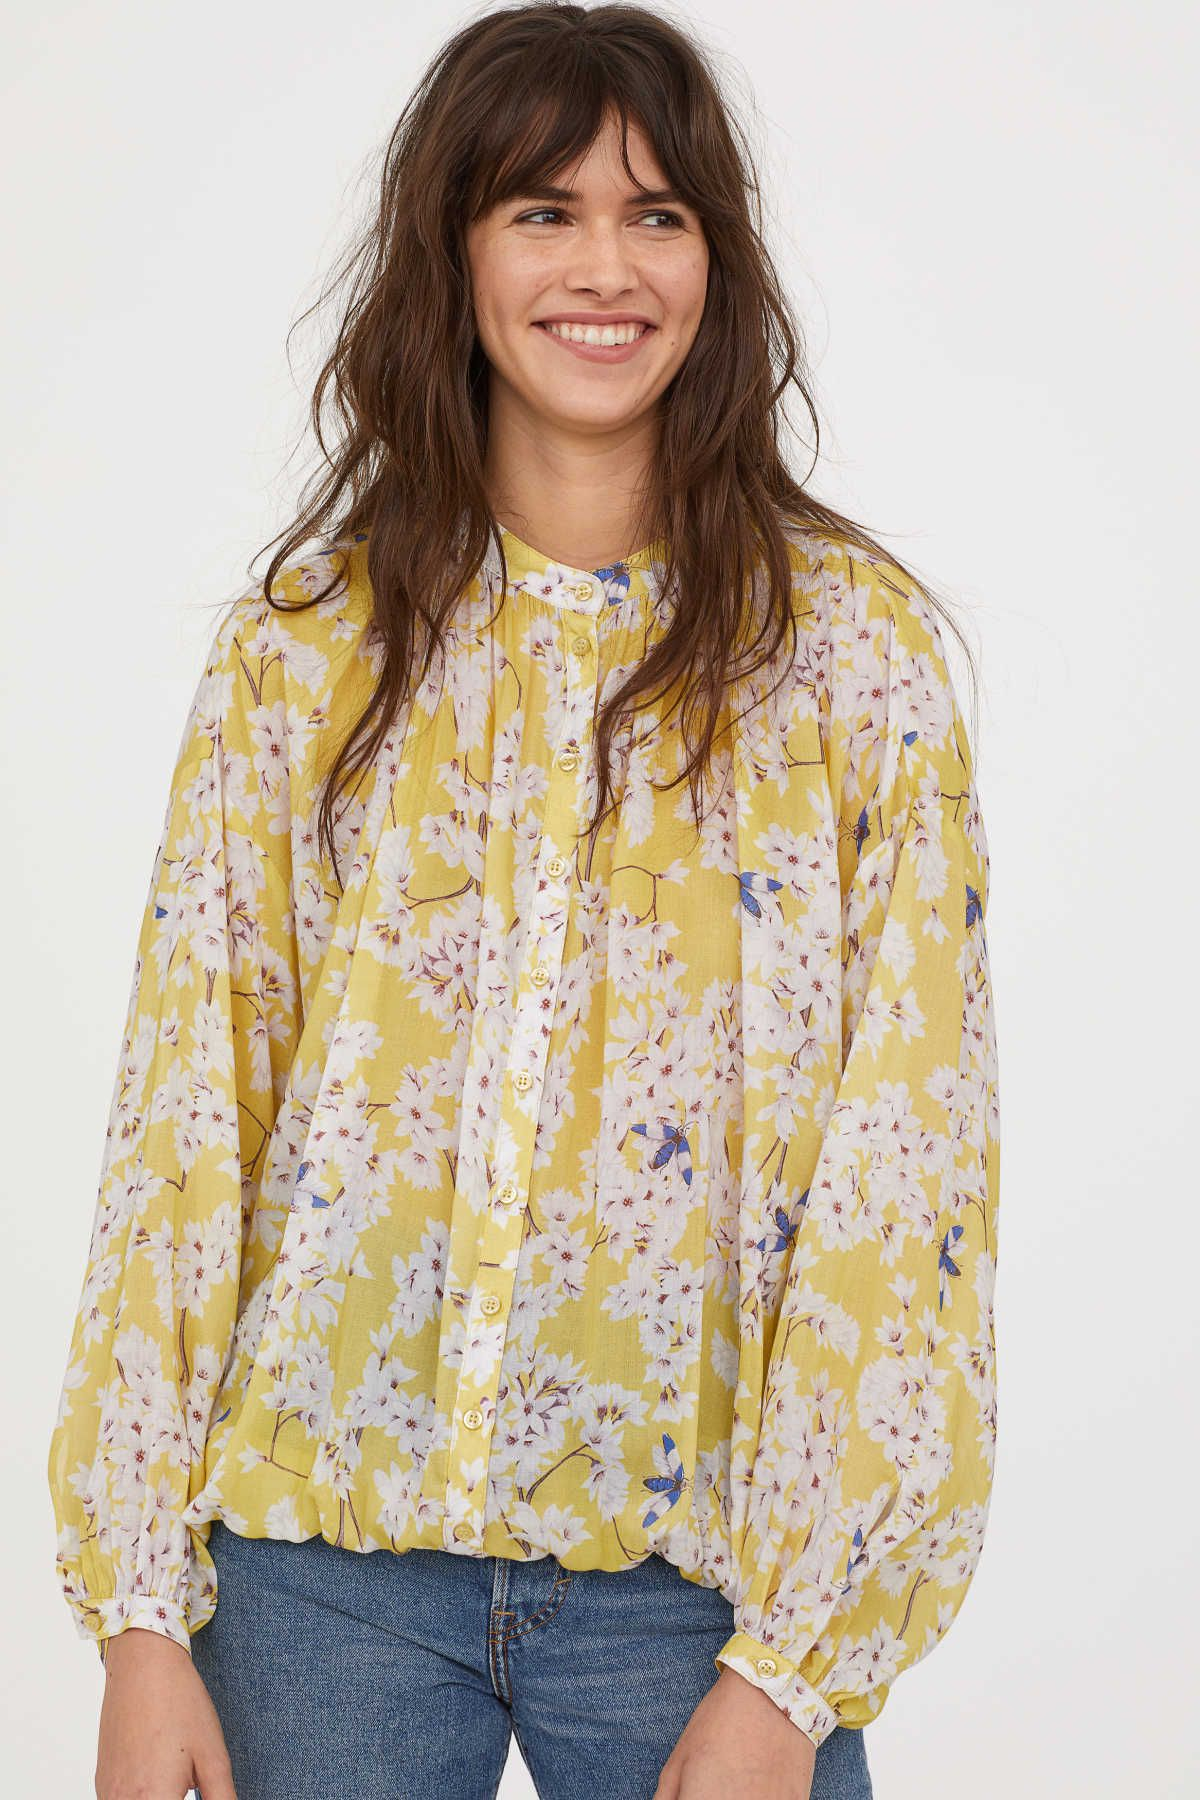 f5c4acb07547c3 Light yellow/floral. ANNA GLOVER x H&M. Patterned blouse in airy, woven  Tencel® lyocell fabric. Small stand-up collar, buttons at front, and dropped